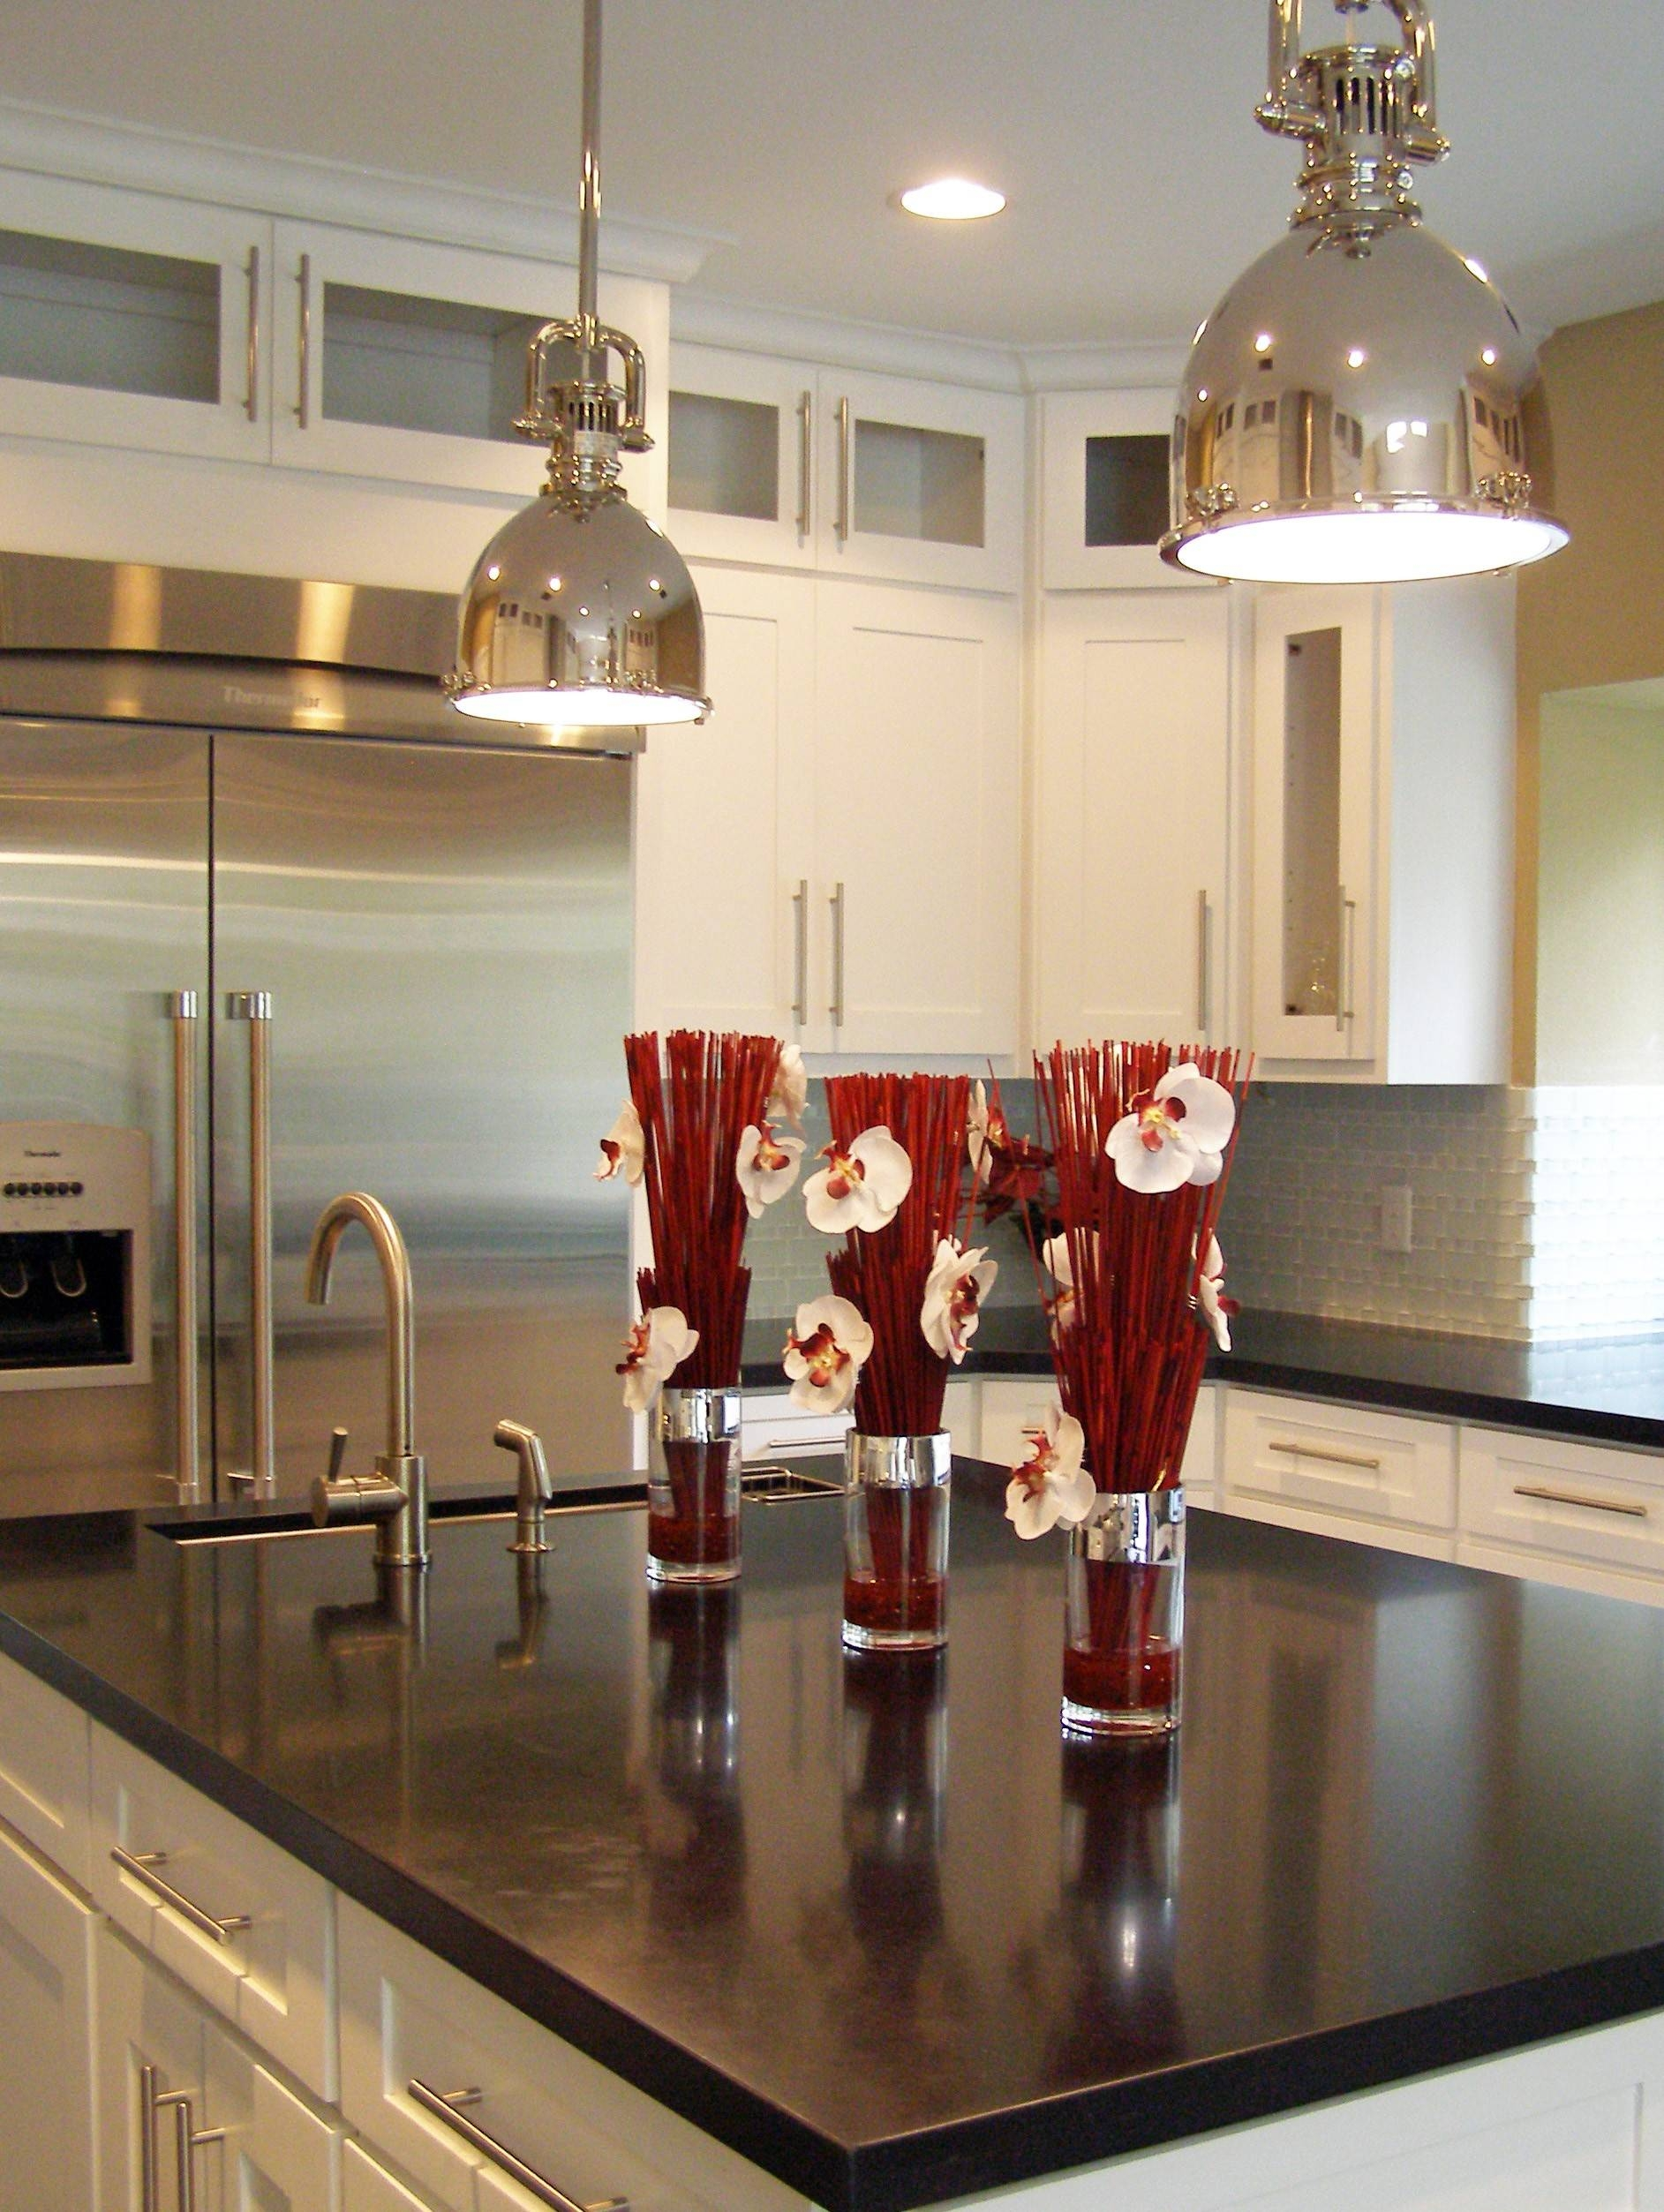 Furniture Appealing Pendant Lights For Kitchen Islands Wooden With Regard To Stainless Steel Kitchen Pendant Lighting (View 2 of 15)